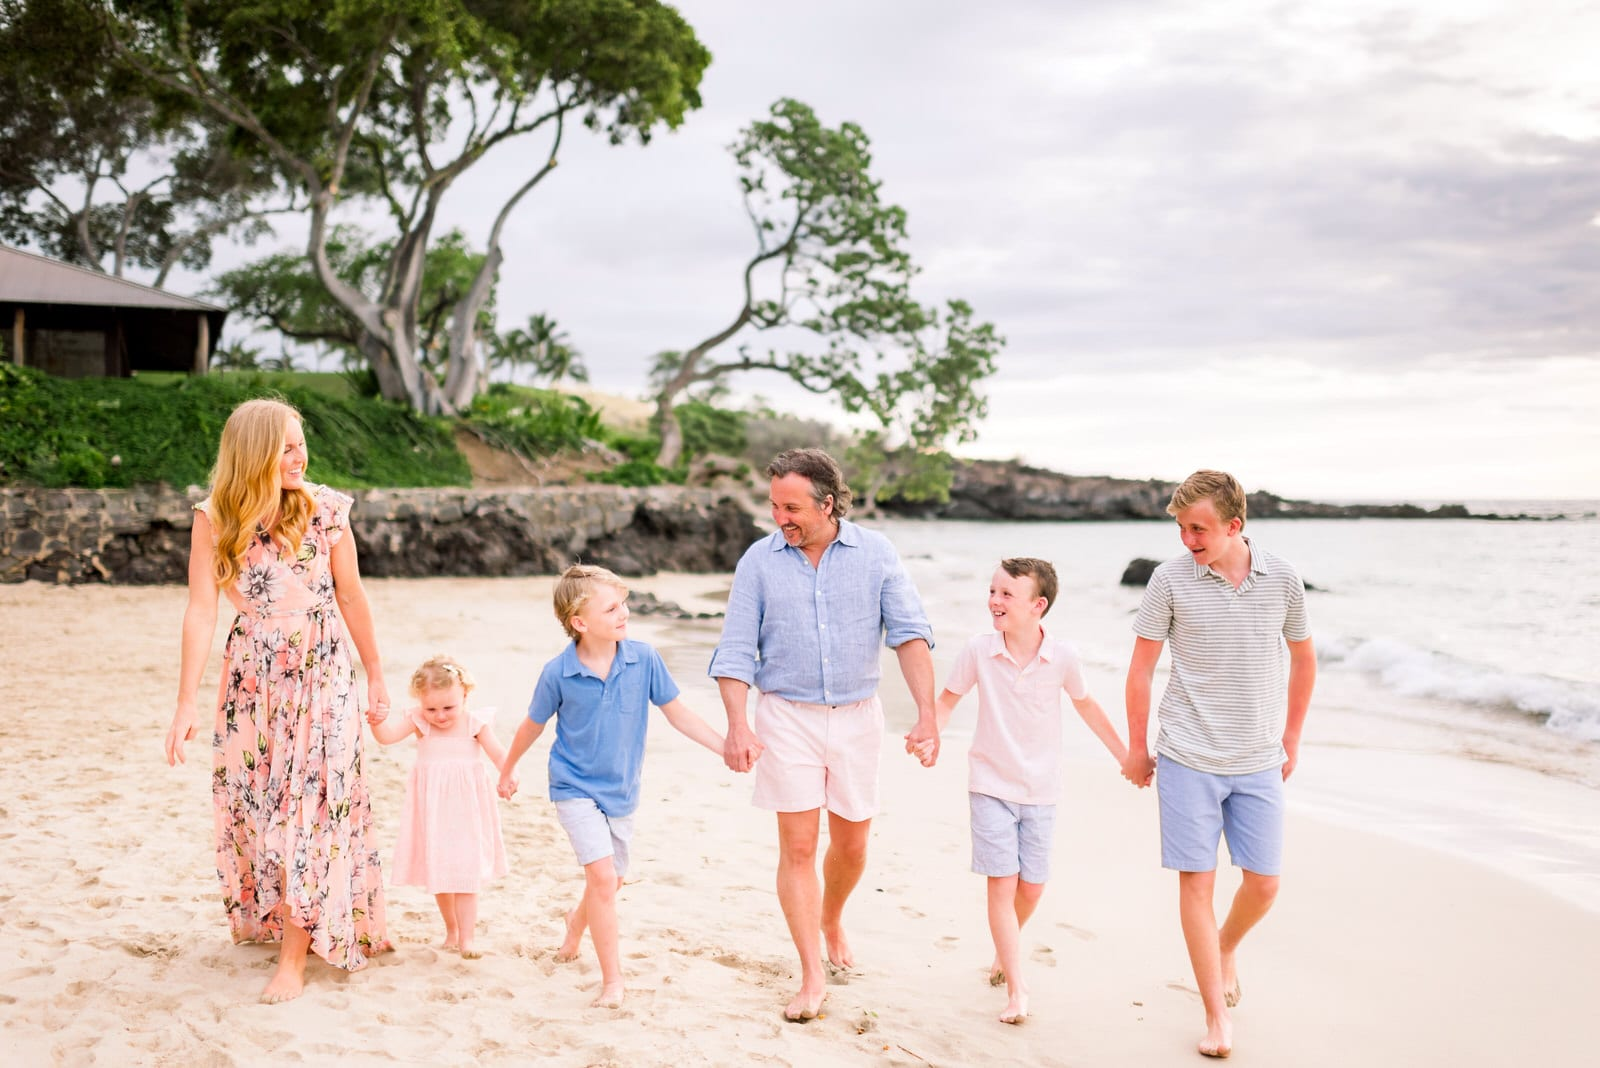 family-beach-photos-mauna-kea-beach-hawaii-pastel-outfits-4.jpg